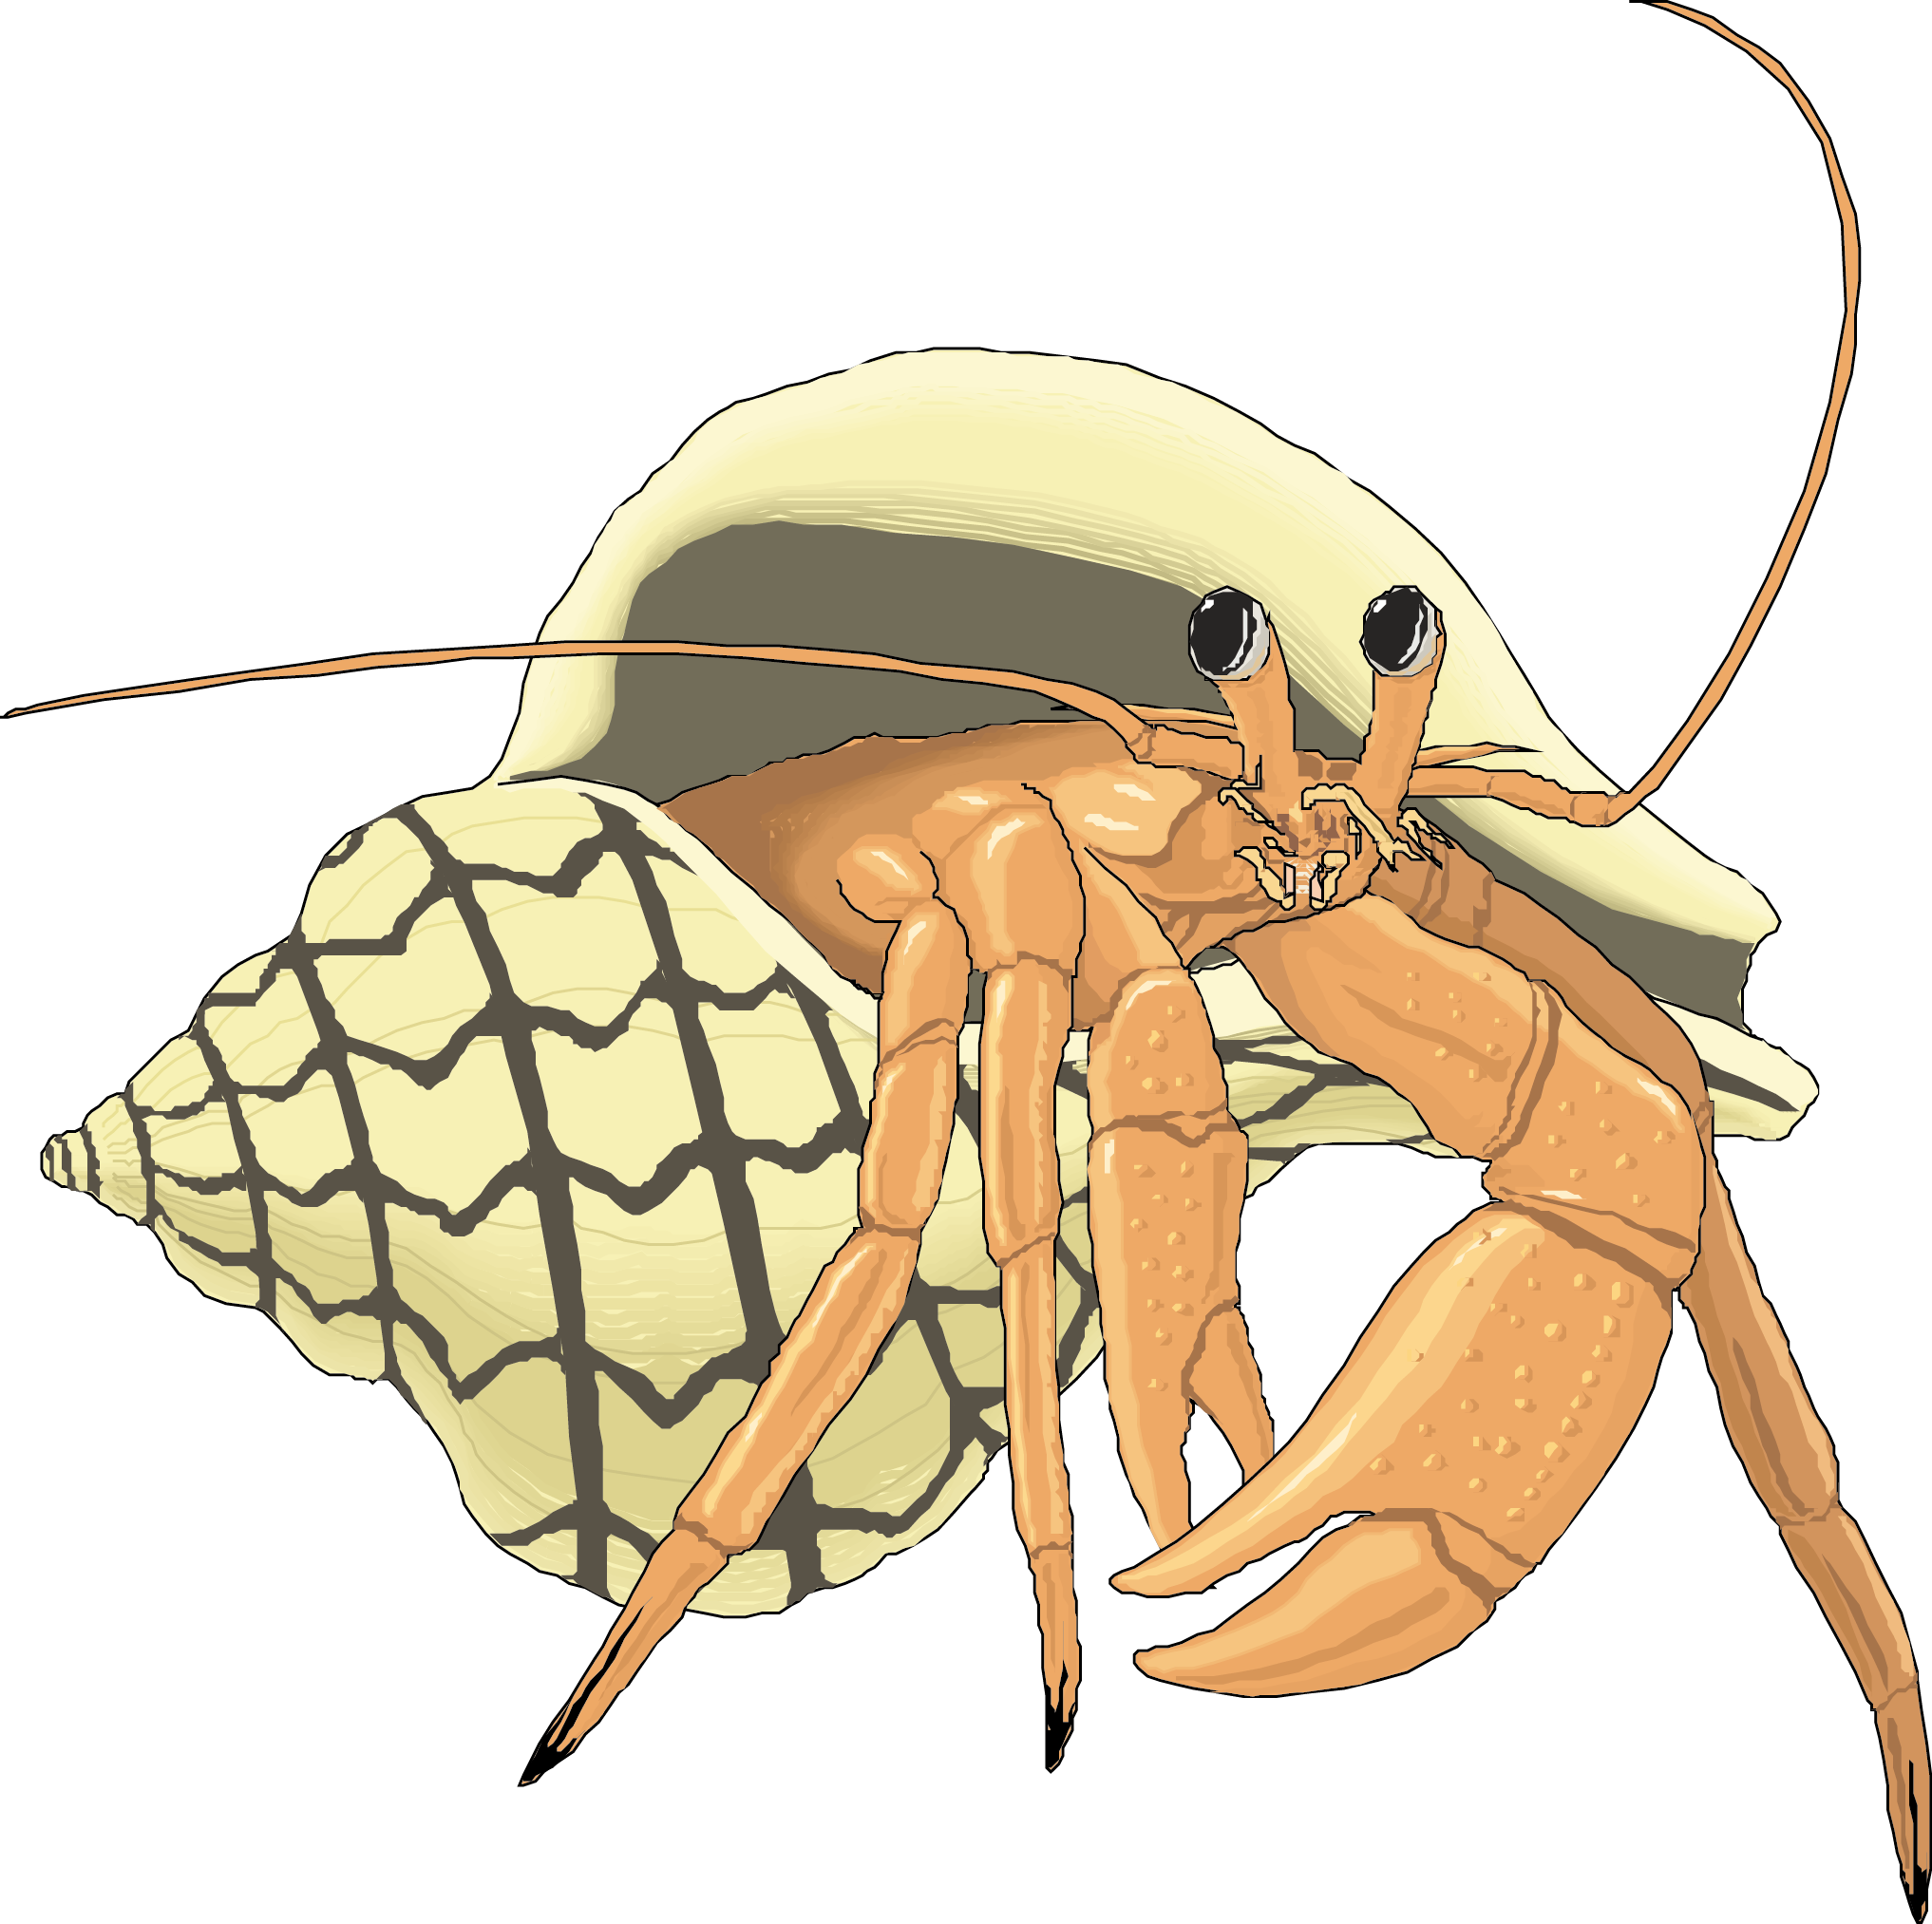 Hermit crab png. The adventures of periwinkle